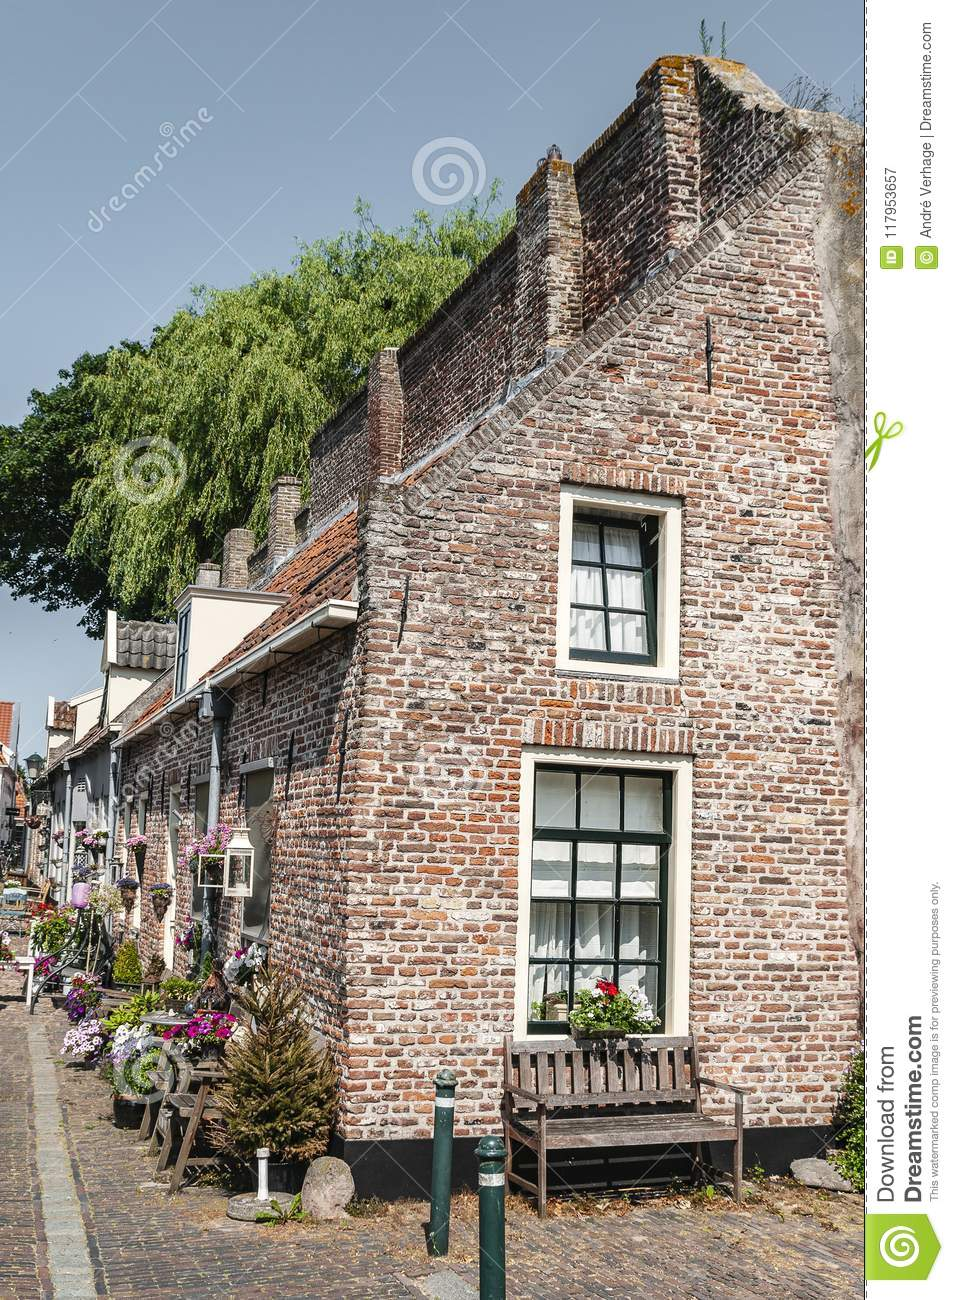 Old Dutch Houses In The Town Of Hardenberg Stock Image Image Of